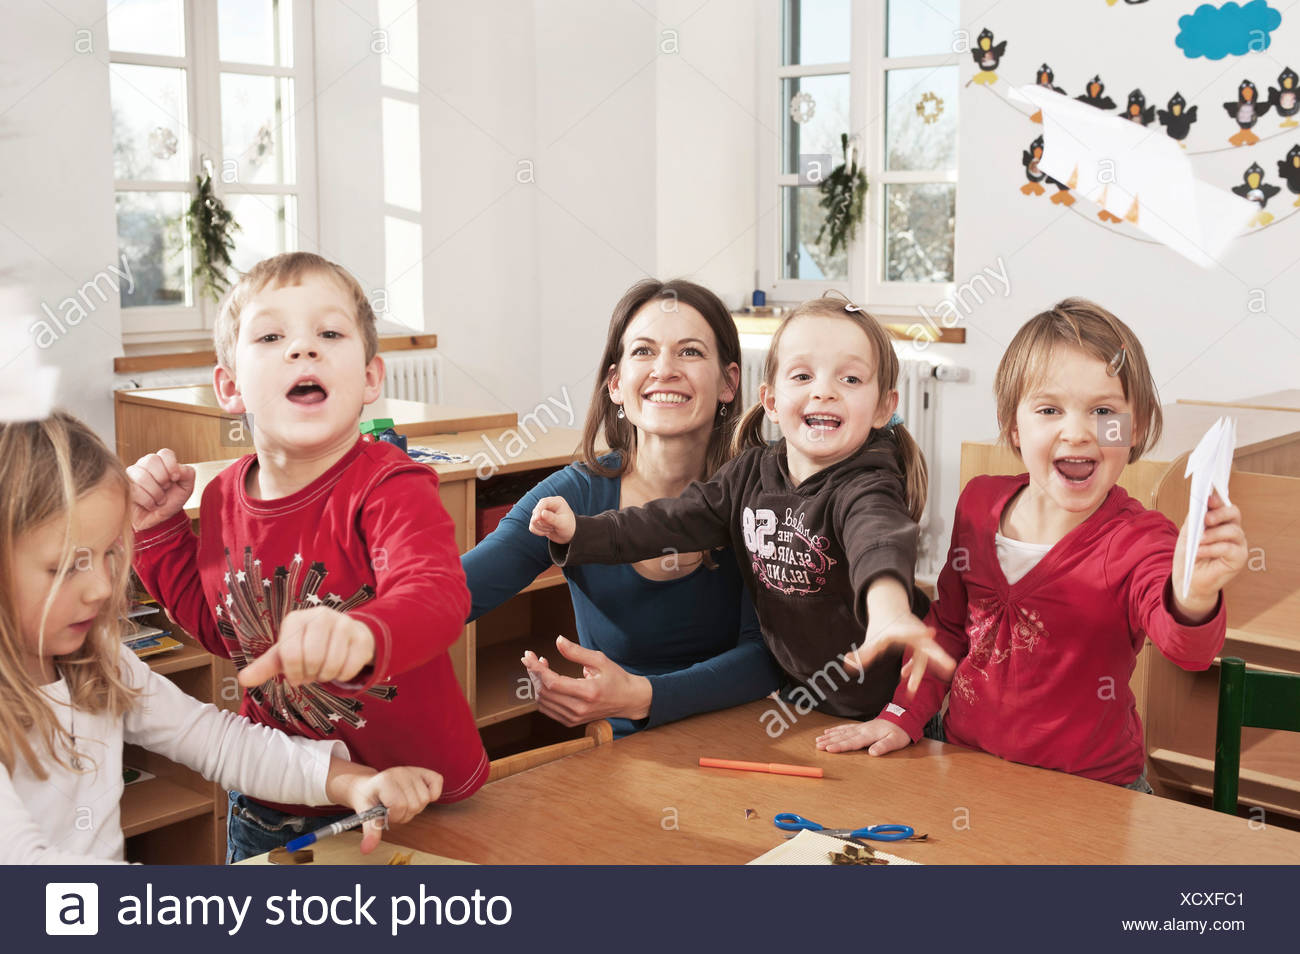 Children In Nursery School Throwing Paper Planes In The Air, Kottgeisering, Bavaria, Germany, Europe Stock Photo